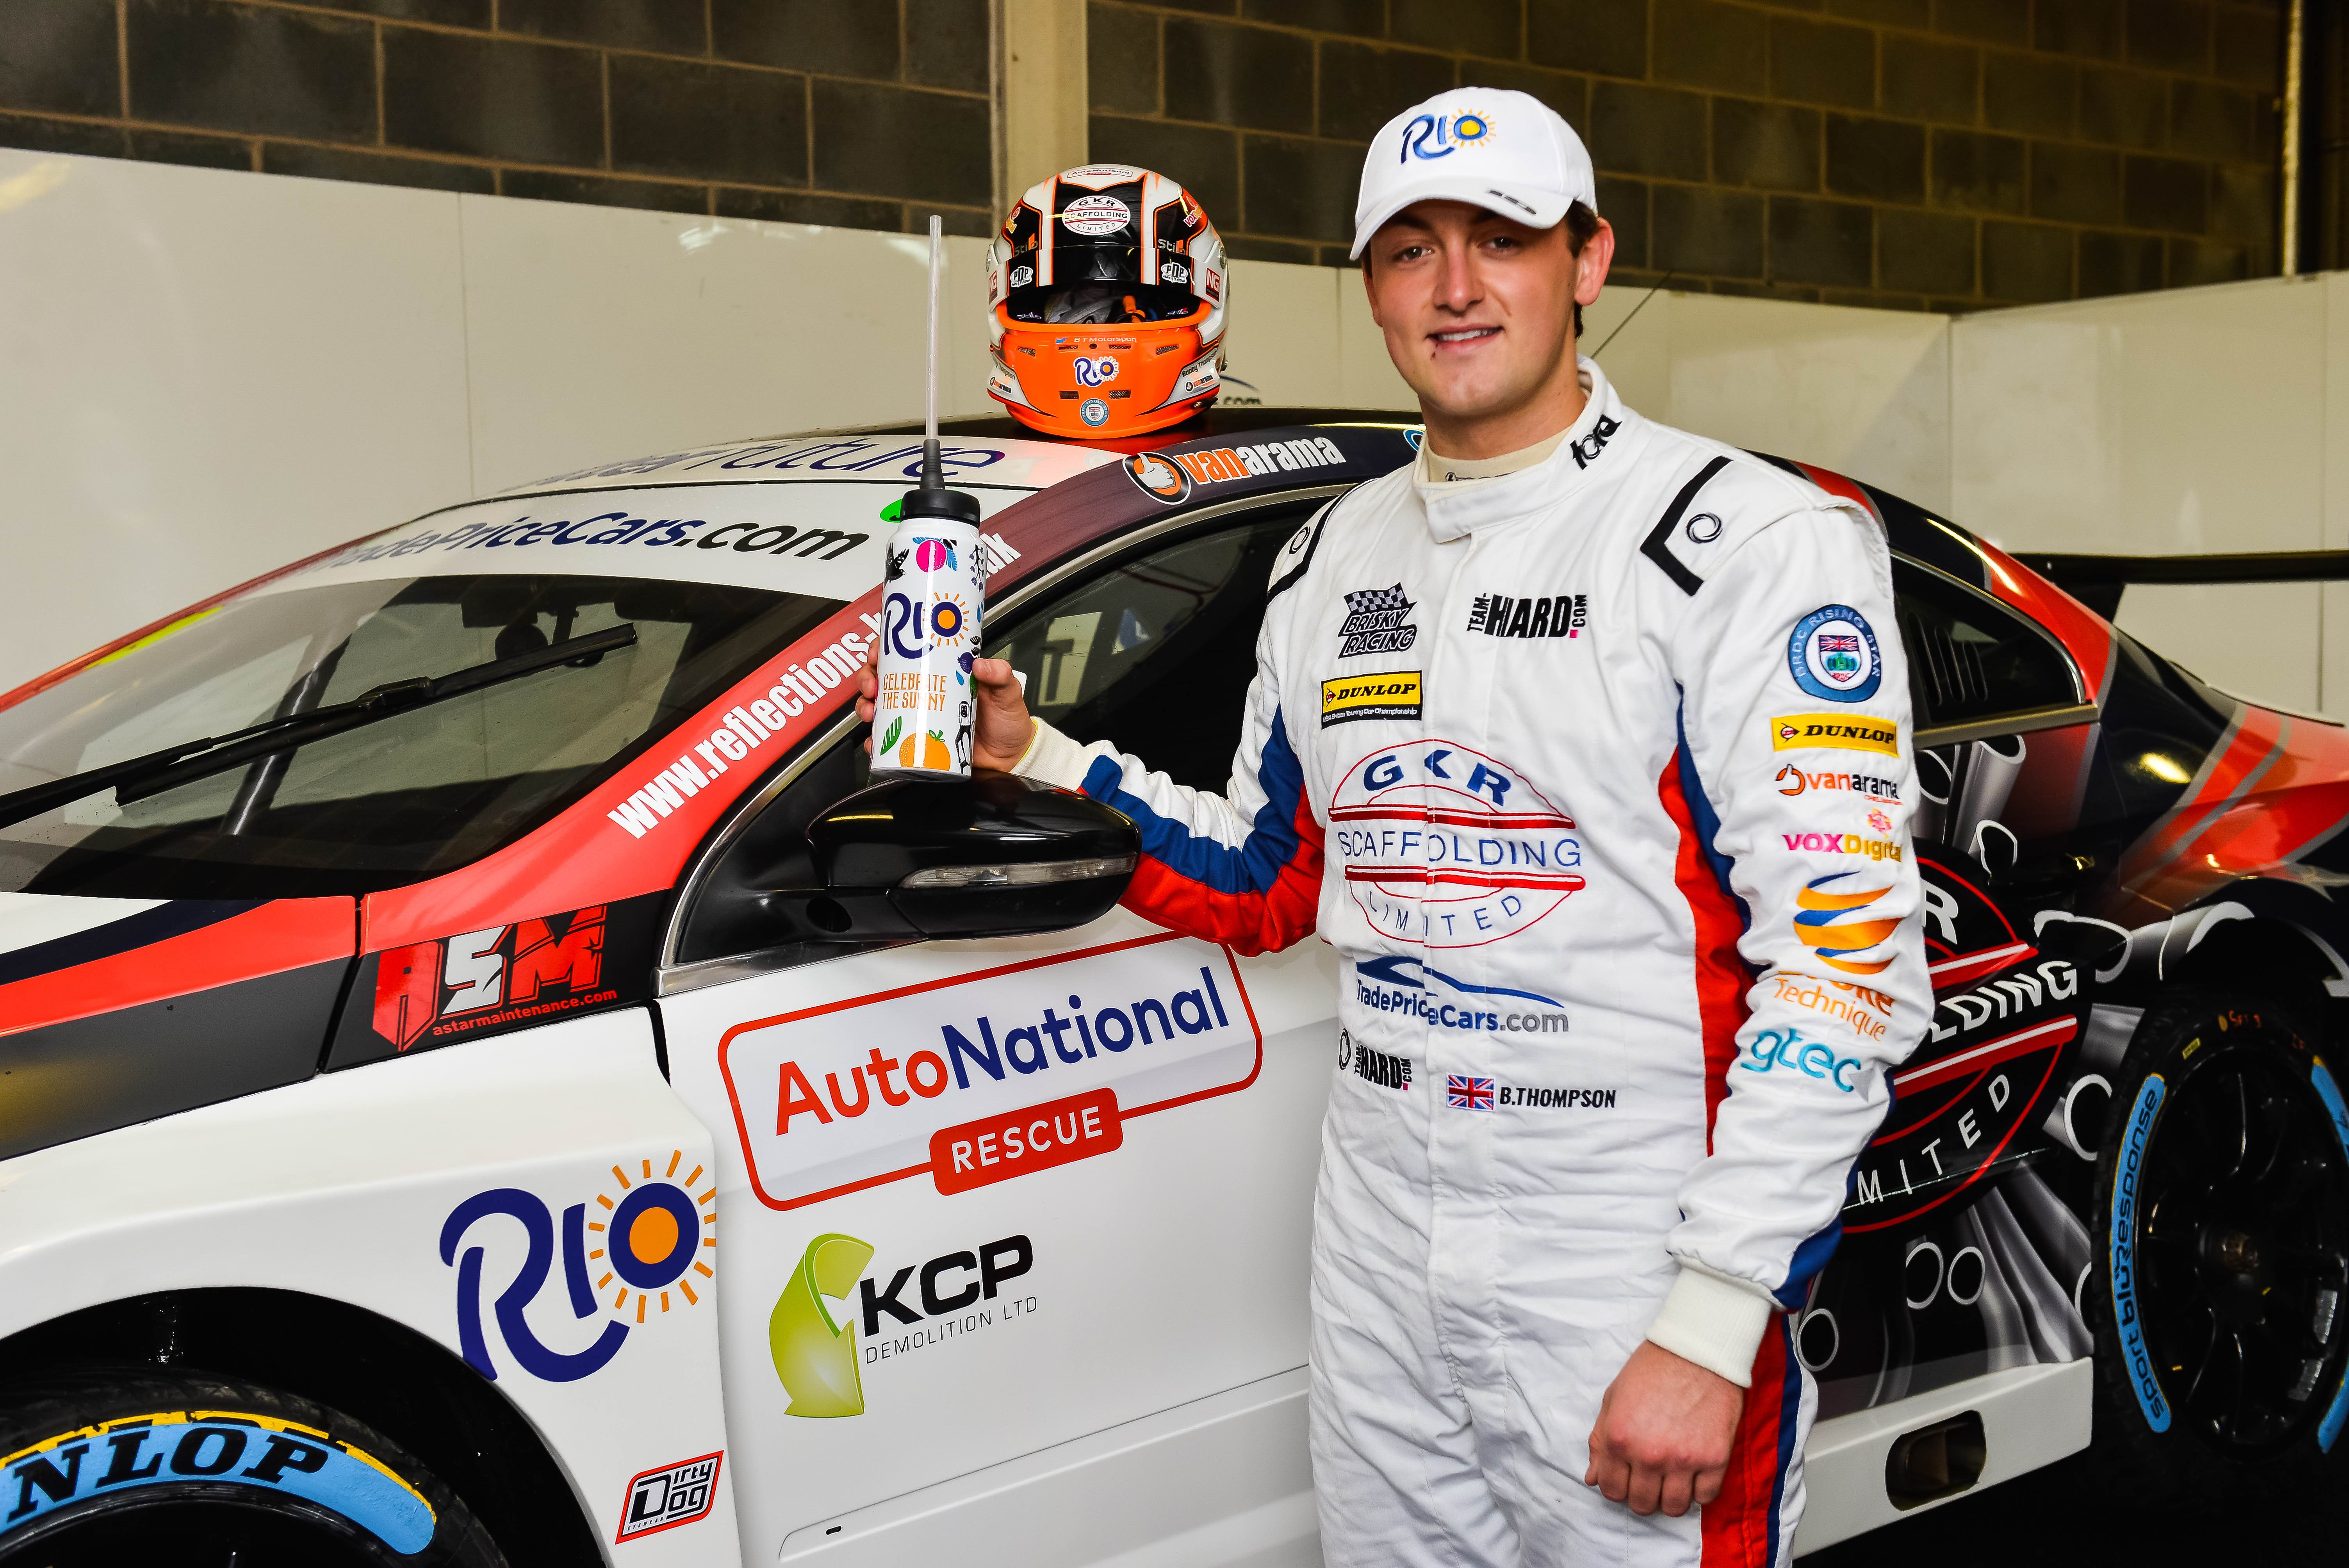 Rio race car driver Bobby Thompson shares his journey so far ...